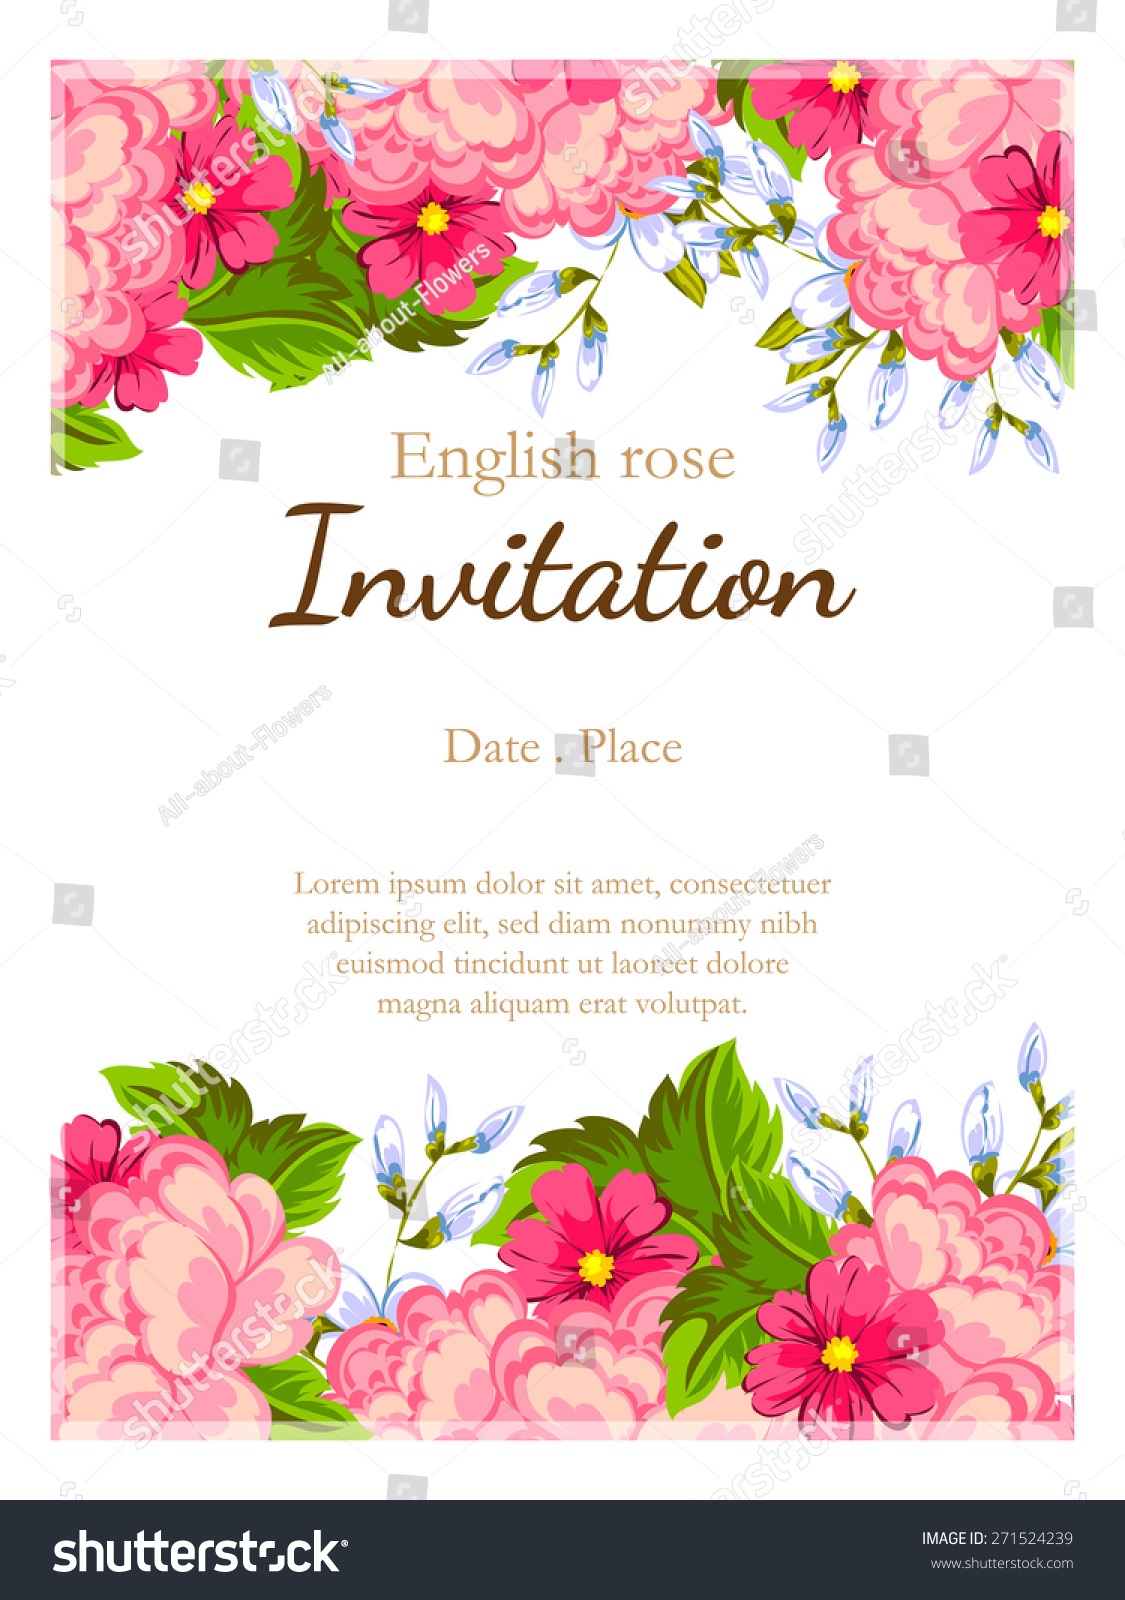 English Rose Romantic Botanical Invitation Greeting Card With